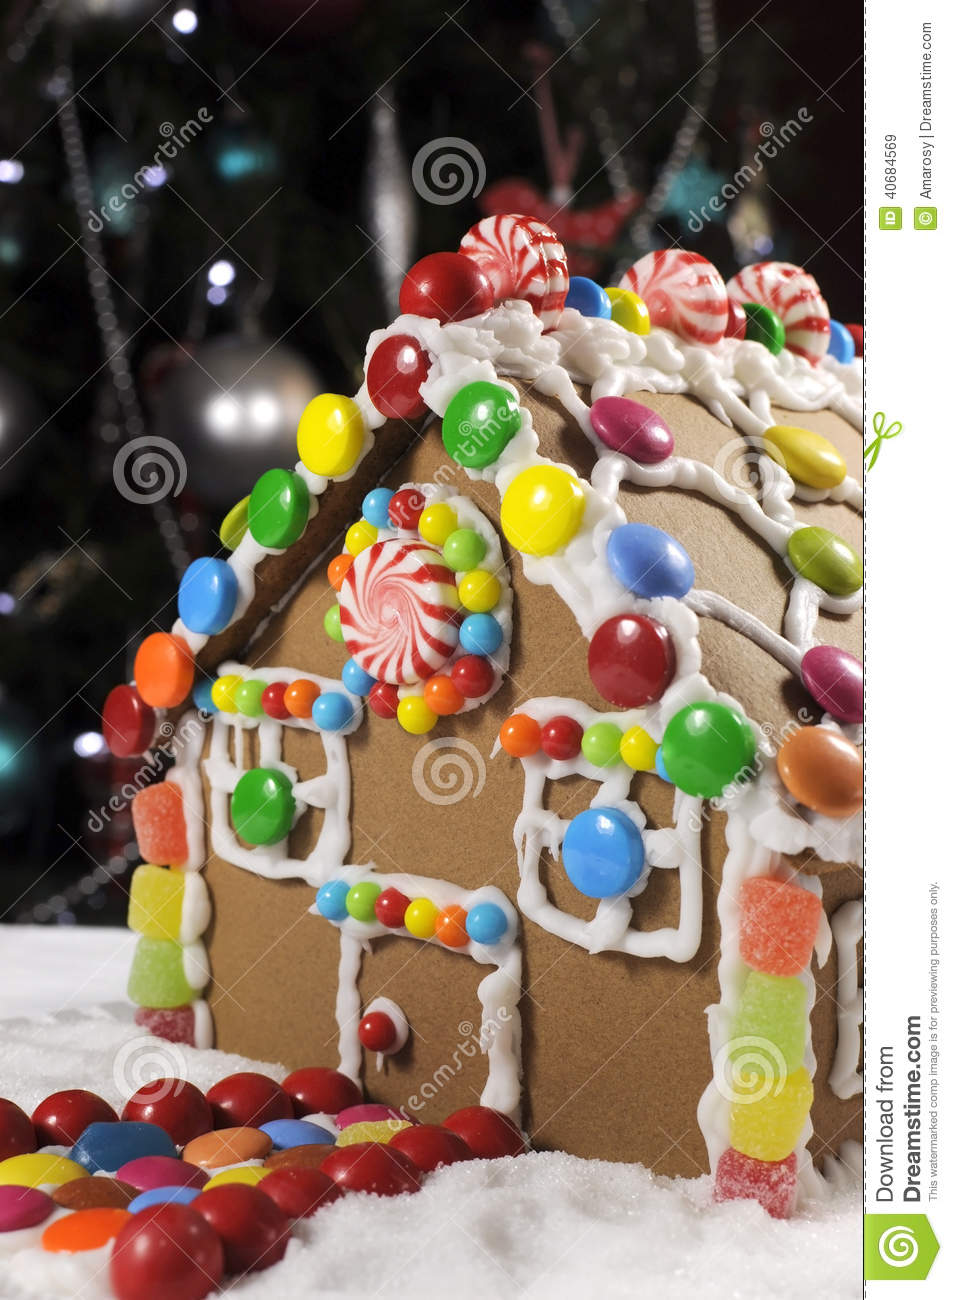 Beautiful Christmas Table Setting In Front Of Christmas Tree Featuring A Gingerbread House